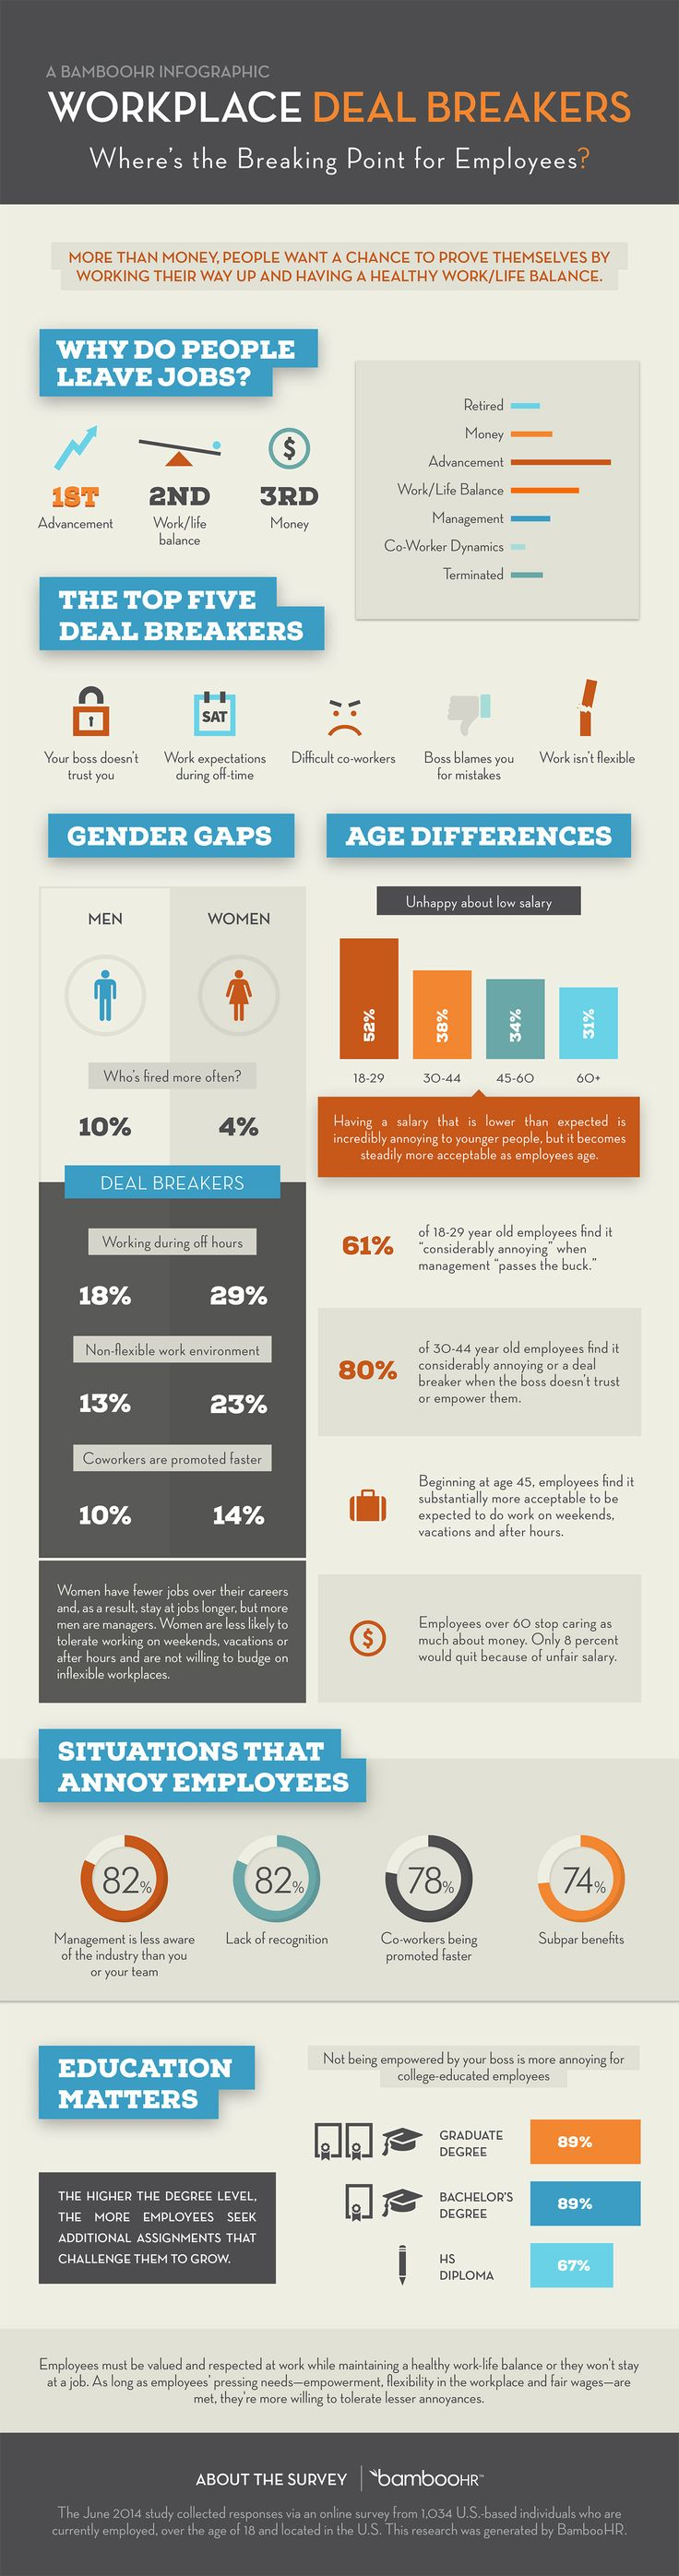 Why Do People Actually Quit Their Jobs? (Infographic)